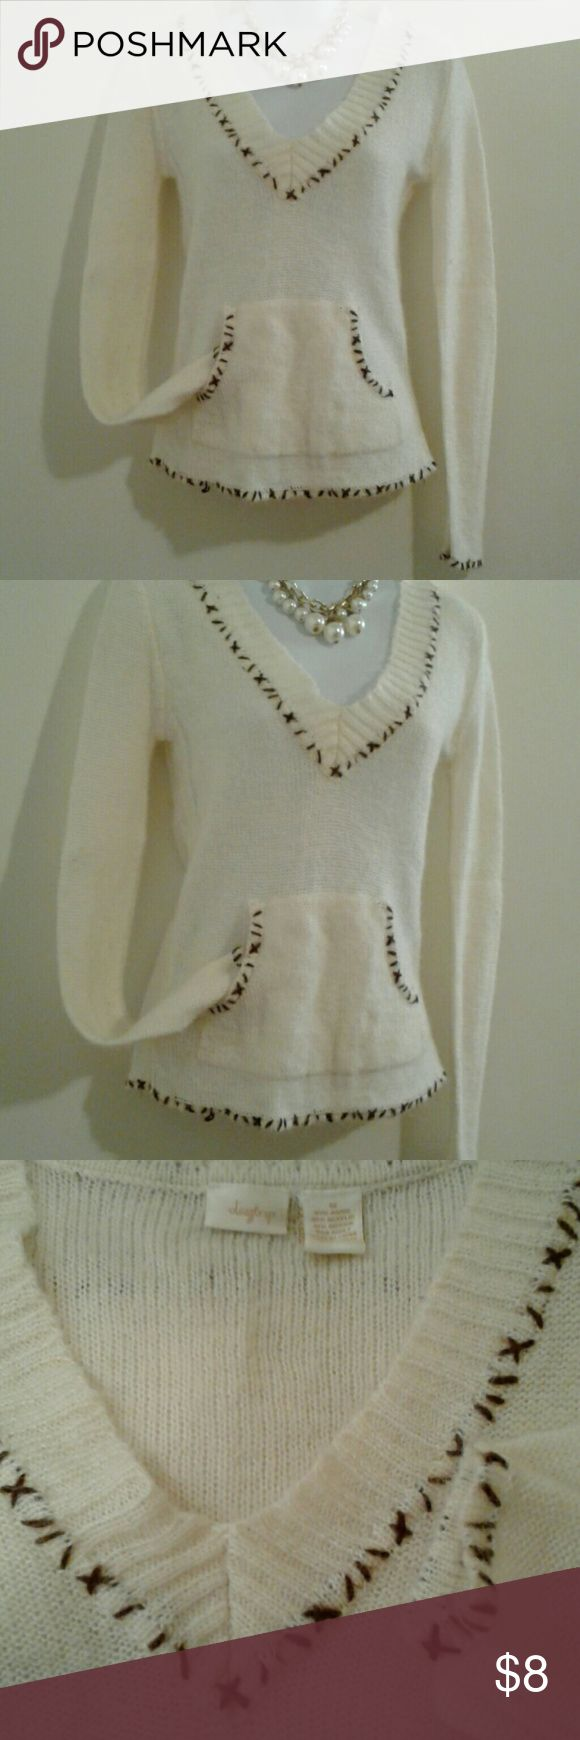 """Cream Stitched VNeck Sweater Excellent condition  55% ramie-30% acrylic-15% mohair  Measures: 16"""" (arm pit to arm pit) Length: 23"""" (shoulder to bottom hem) Daytrip Sweaters V-Necks"""